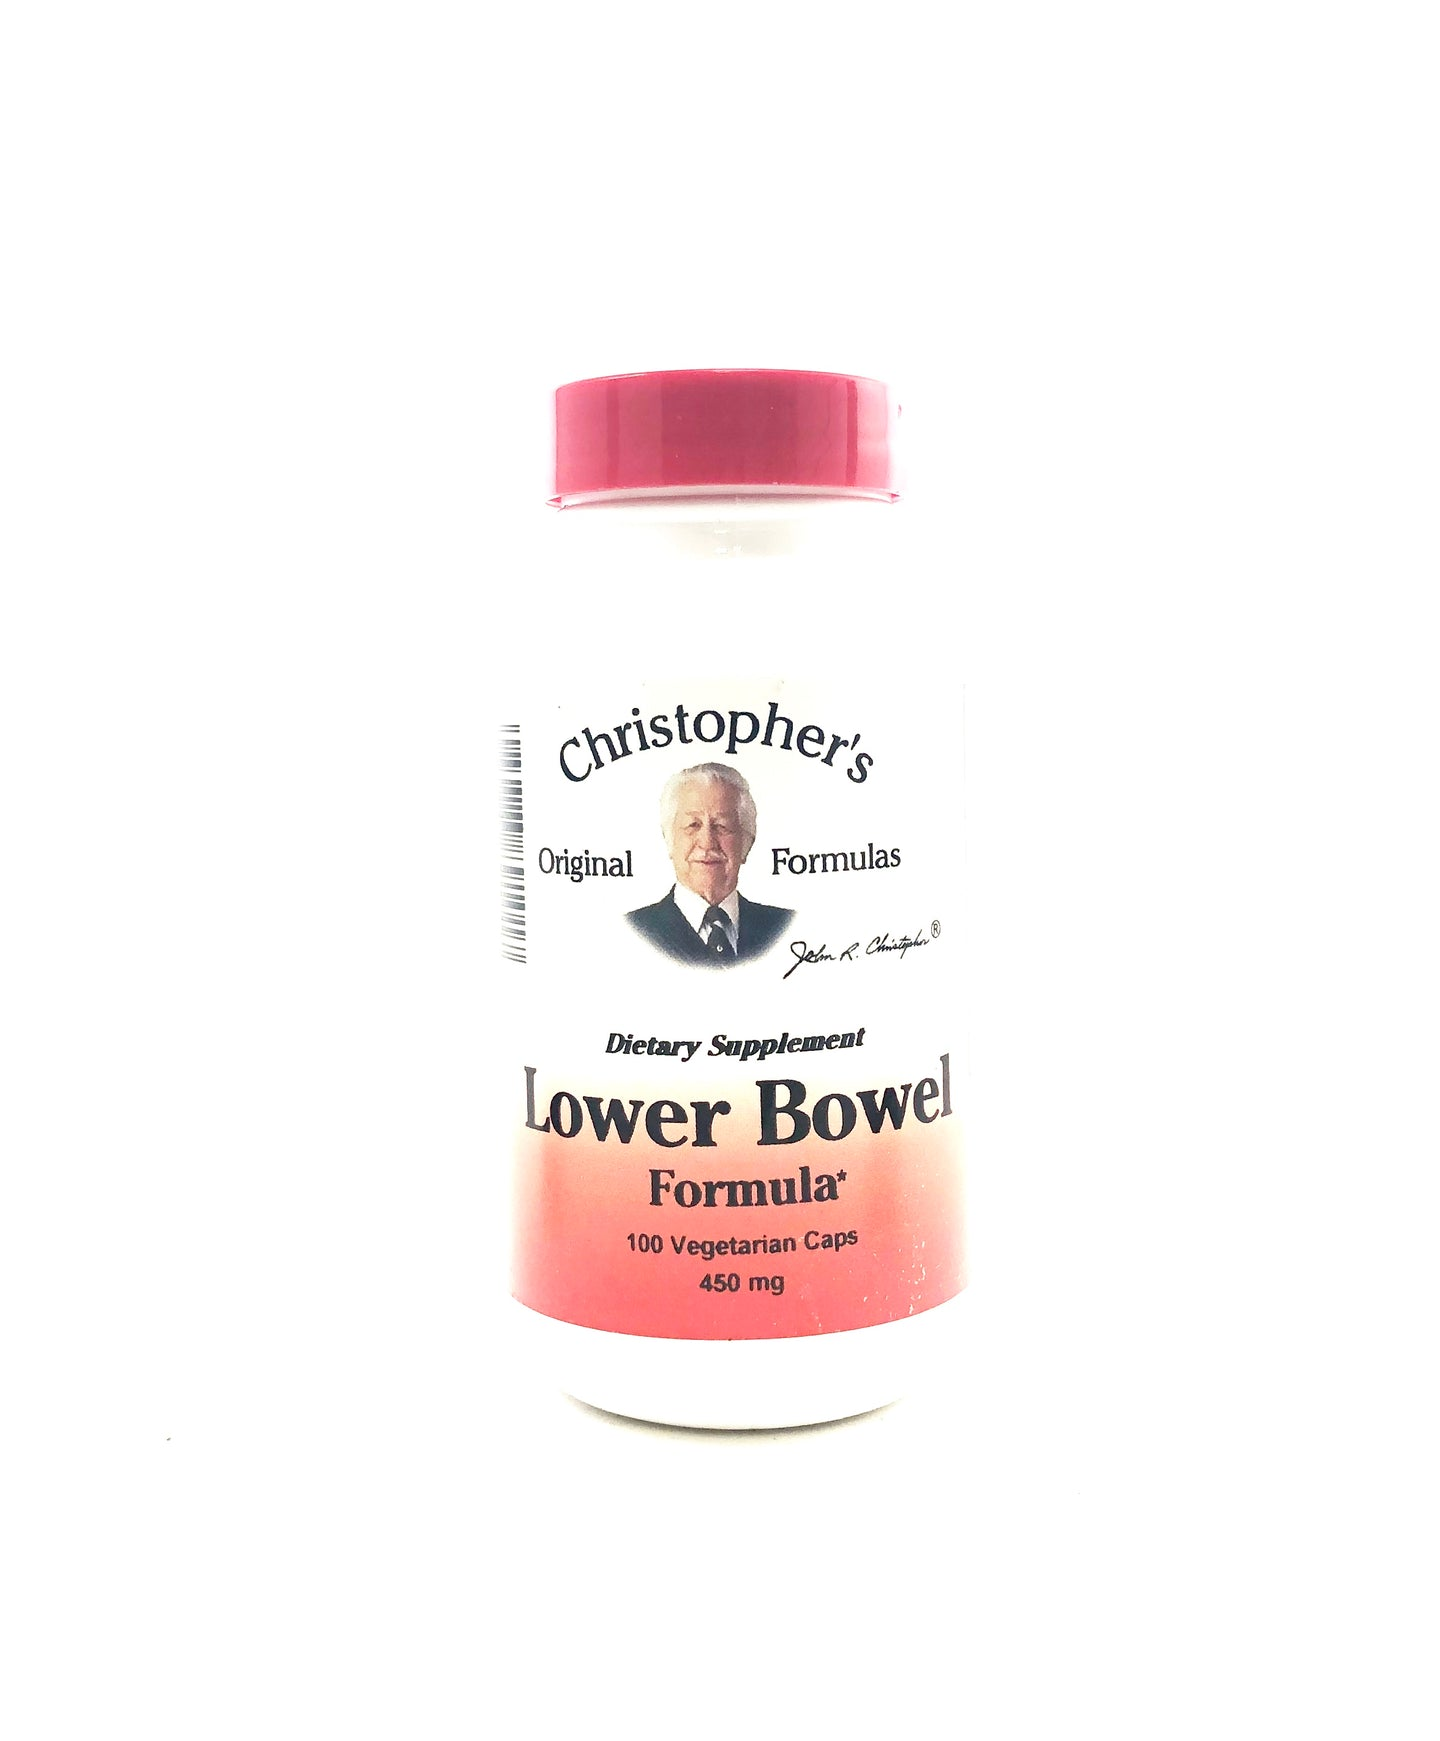 Dr. Christopher's Lower Bowel Formula 100 Capsules